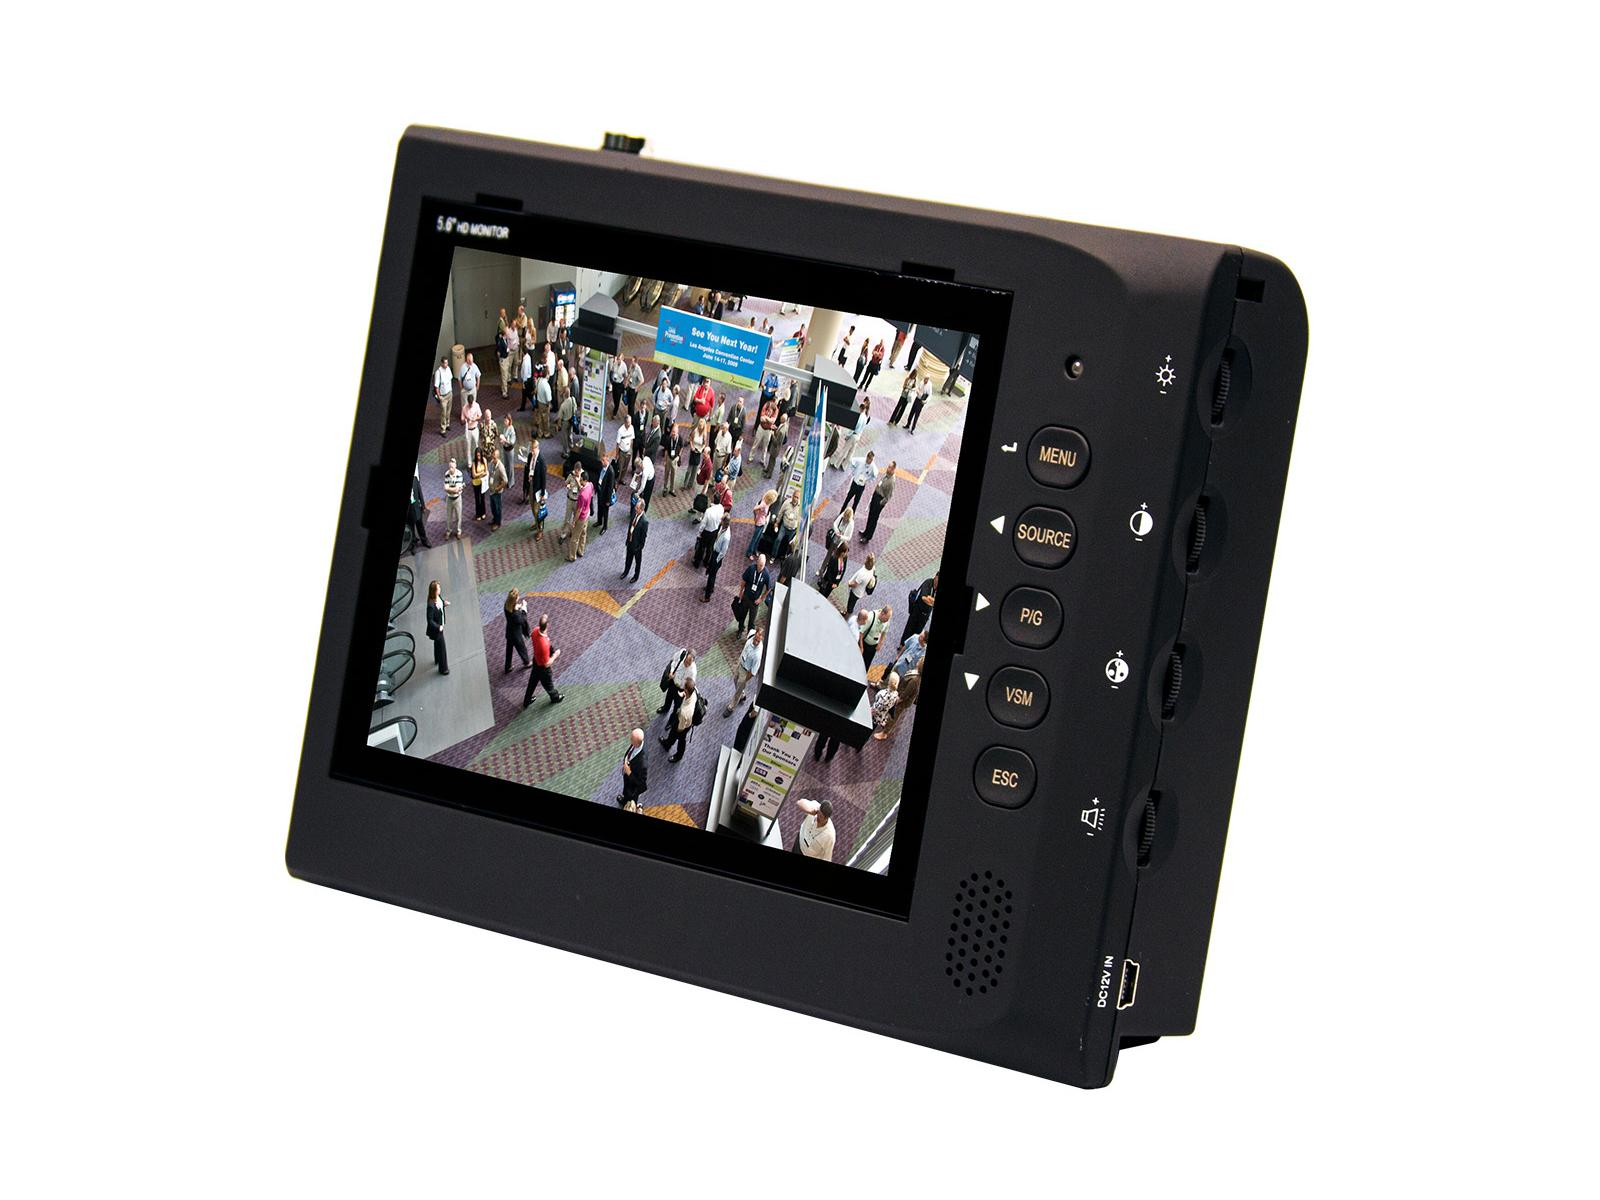 VZ-56SM 5.6 inch 640x480 Analog LED CCTV Test Monitor with Audio Support by ViewZ